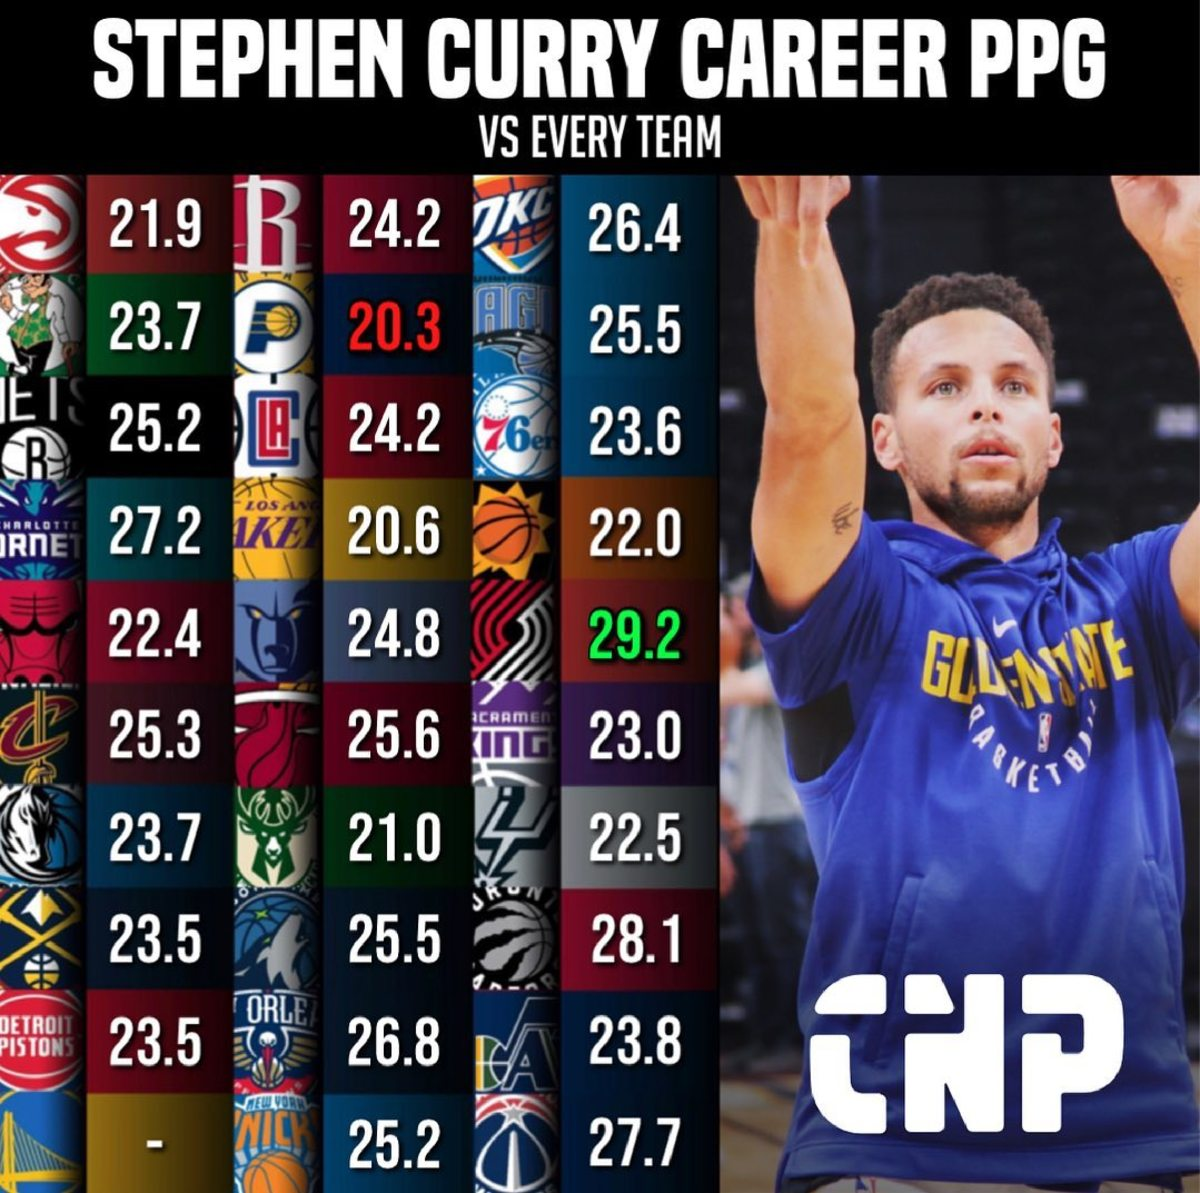 Stephen Curry Career PPG